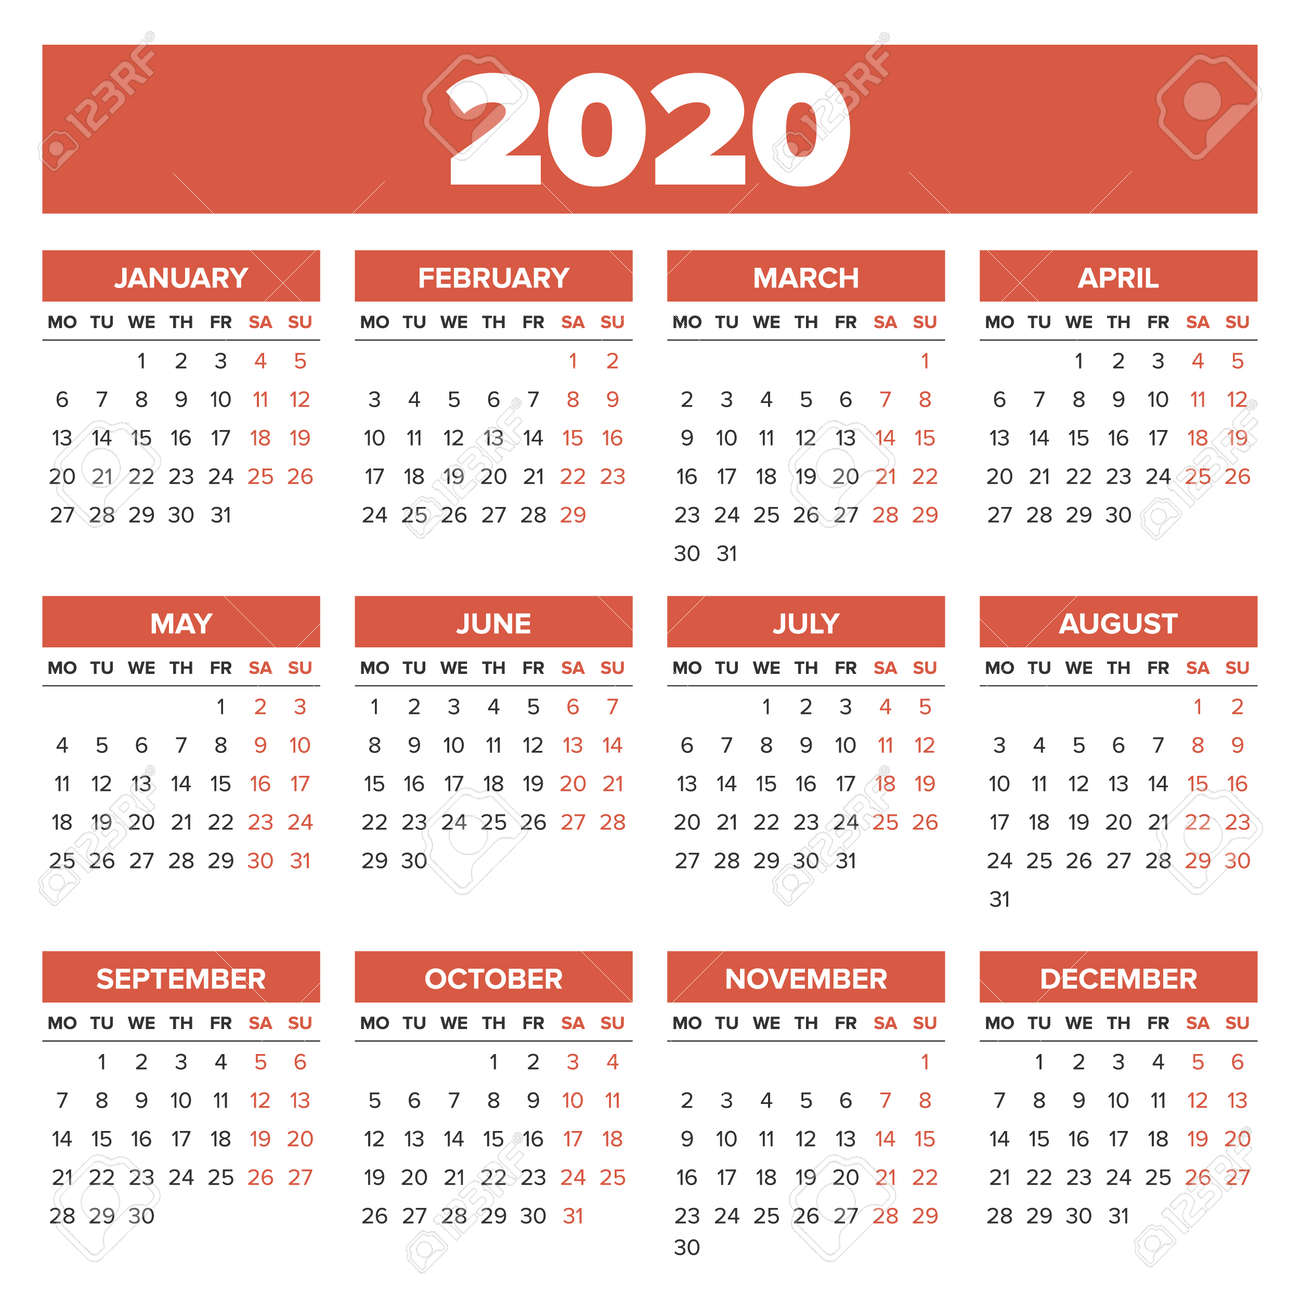 Calendario 2020 2020.Simple 2020 Year Calendar Week Starts On Monday